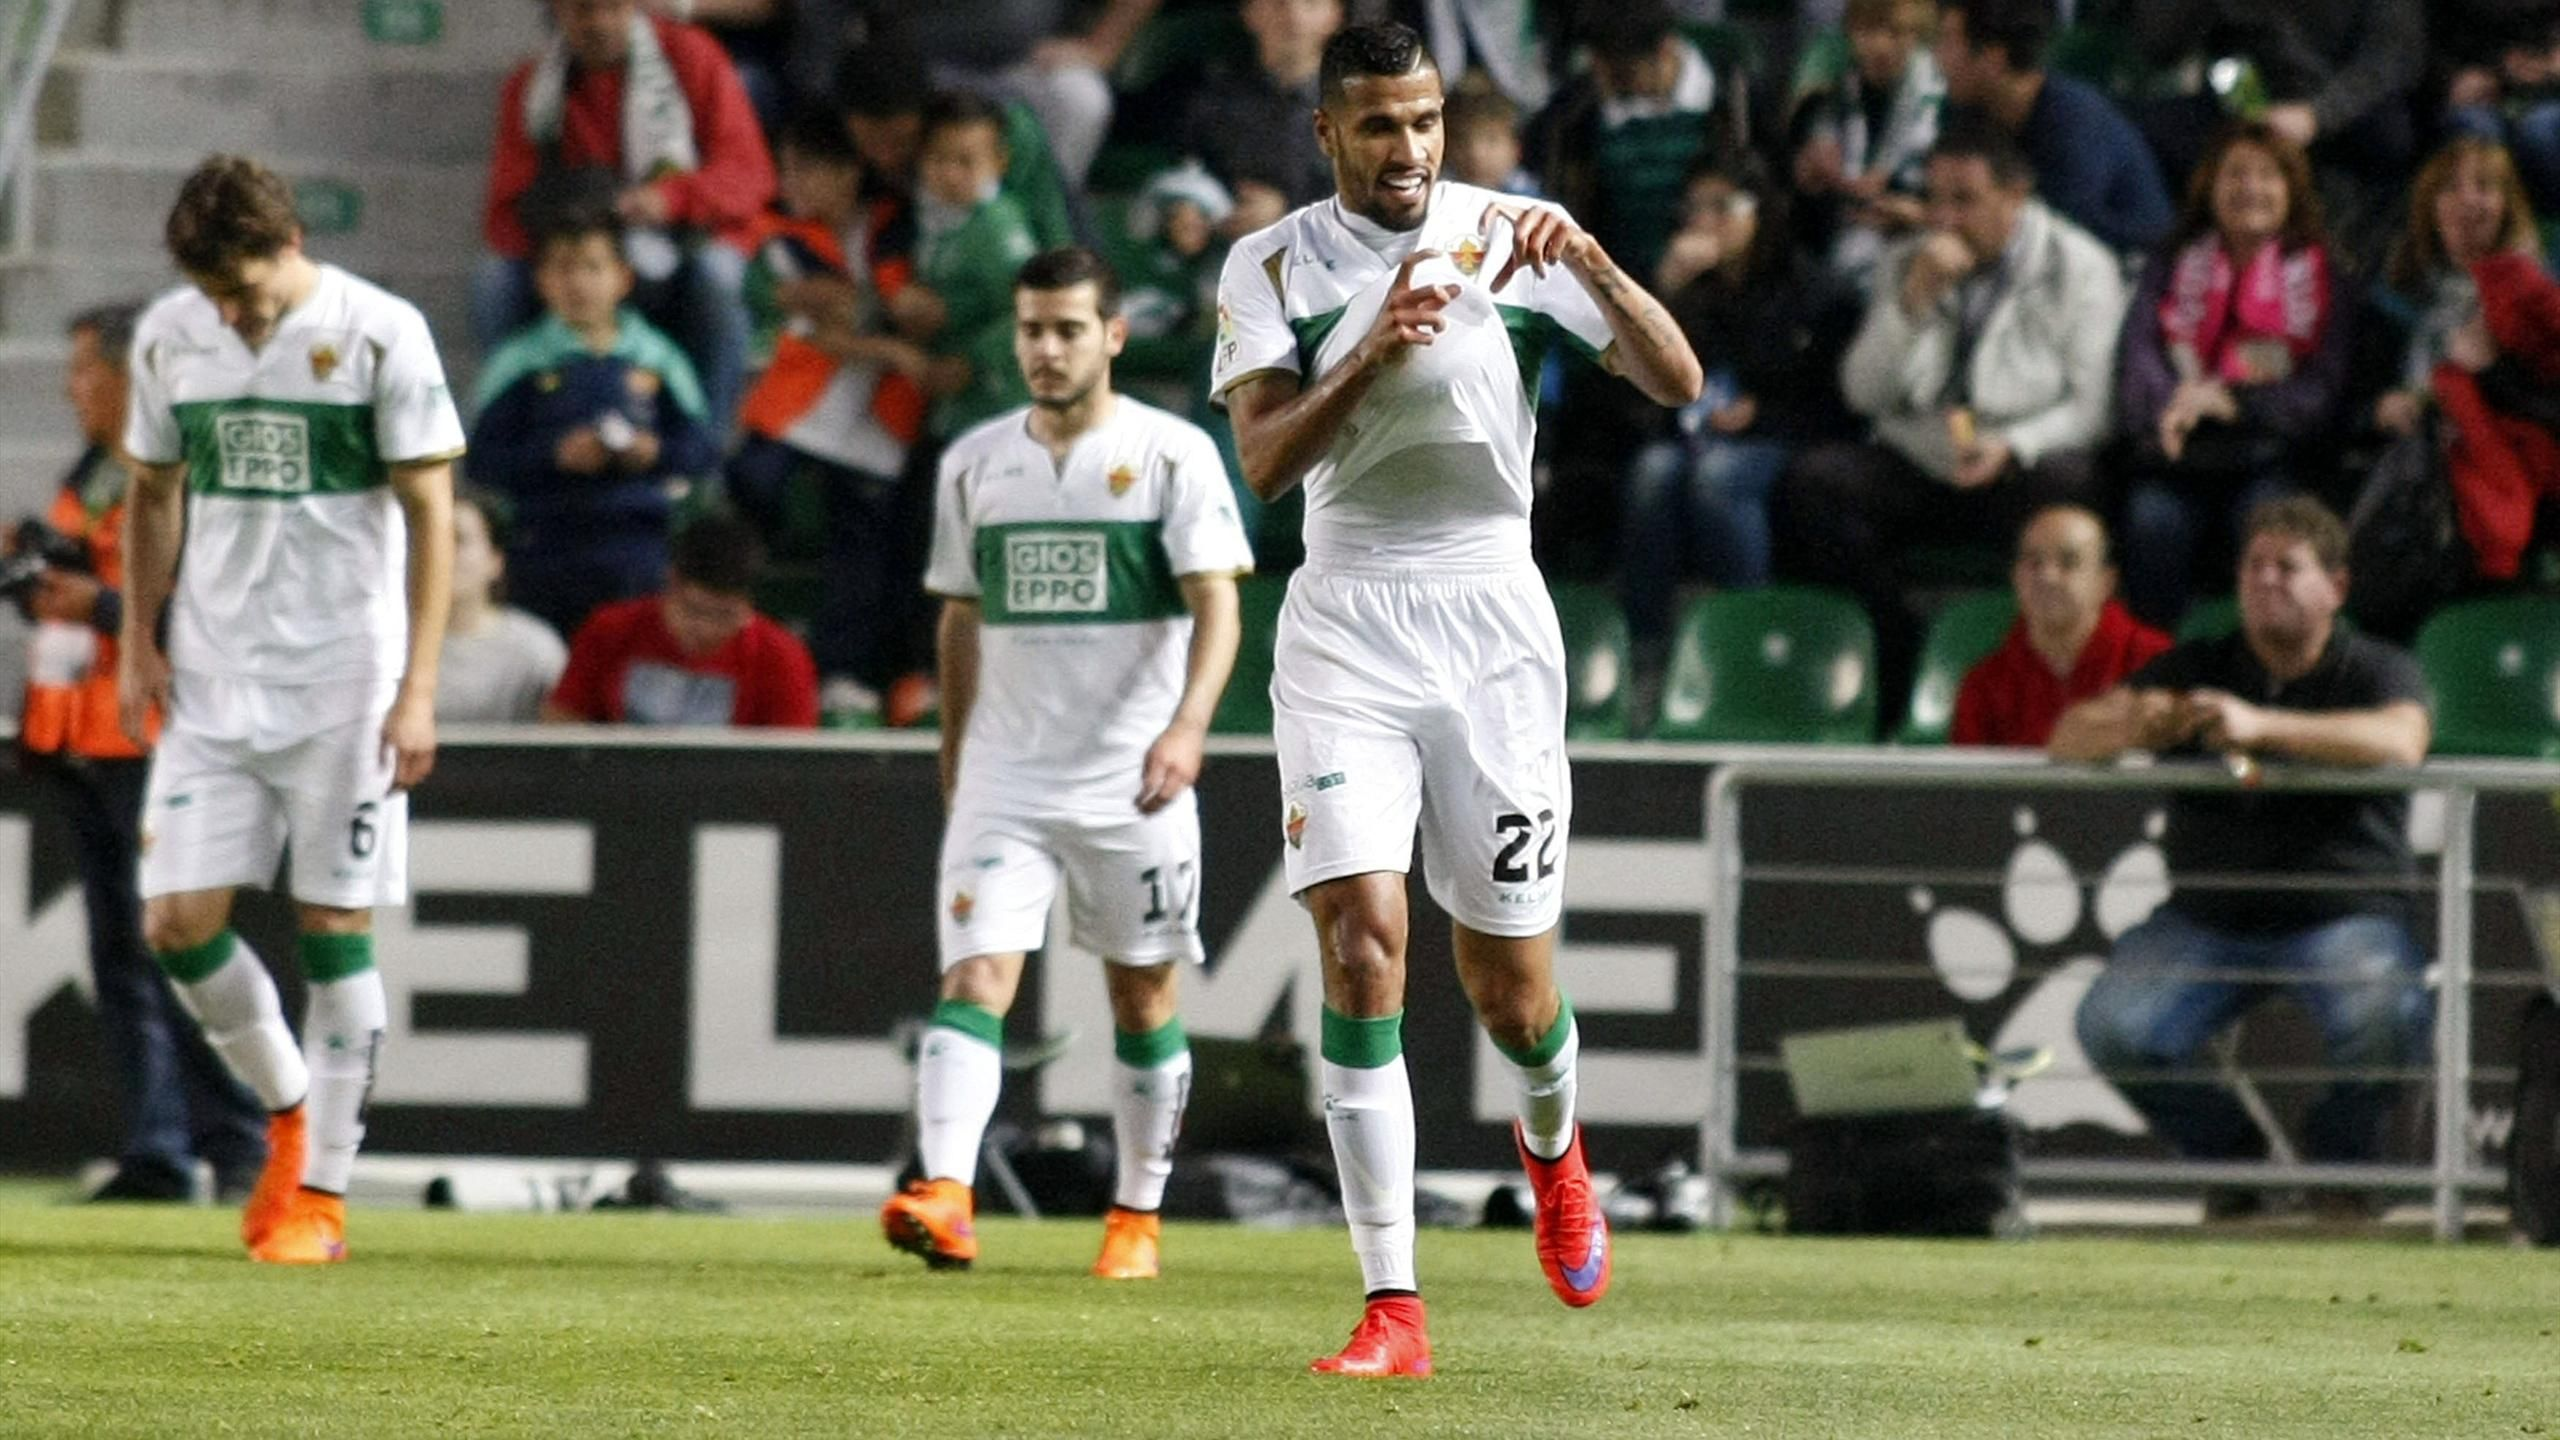 Video: Elche vs Real Sociedad